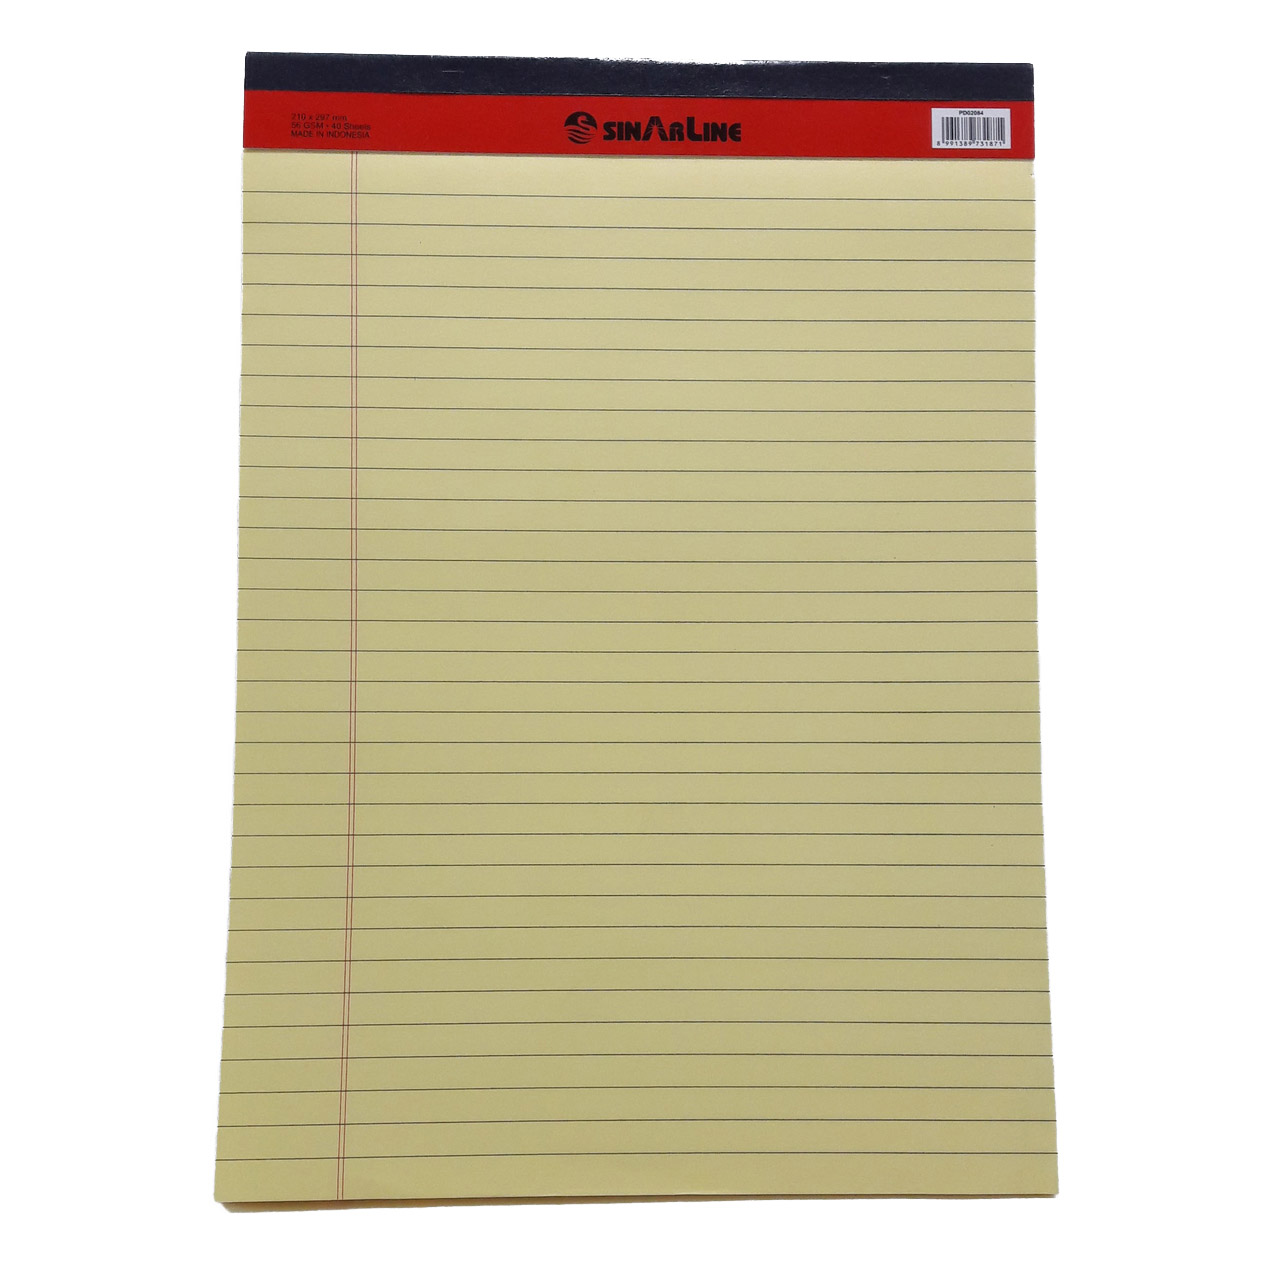 Sinarline Writing Pad 50-sheets A4 - Yellow (pkt/10pcs)